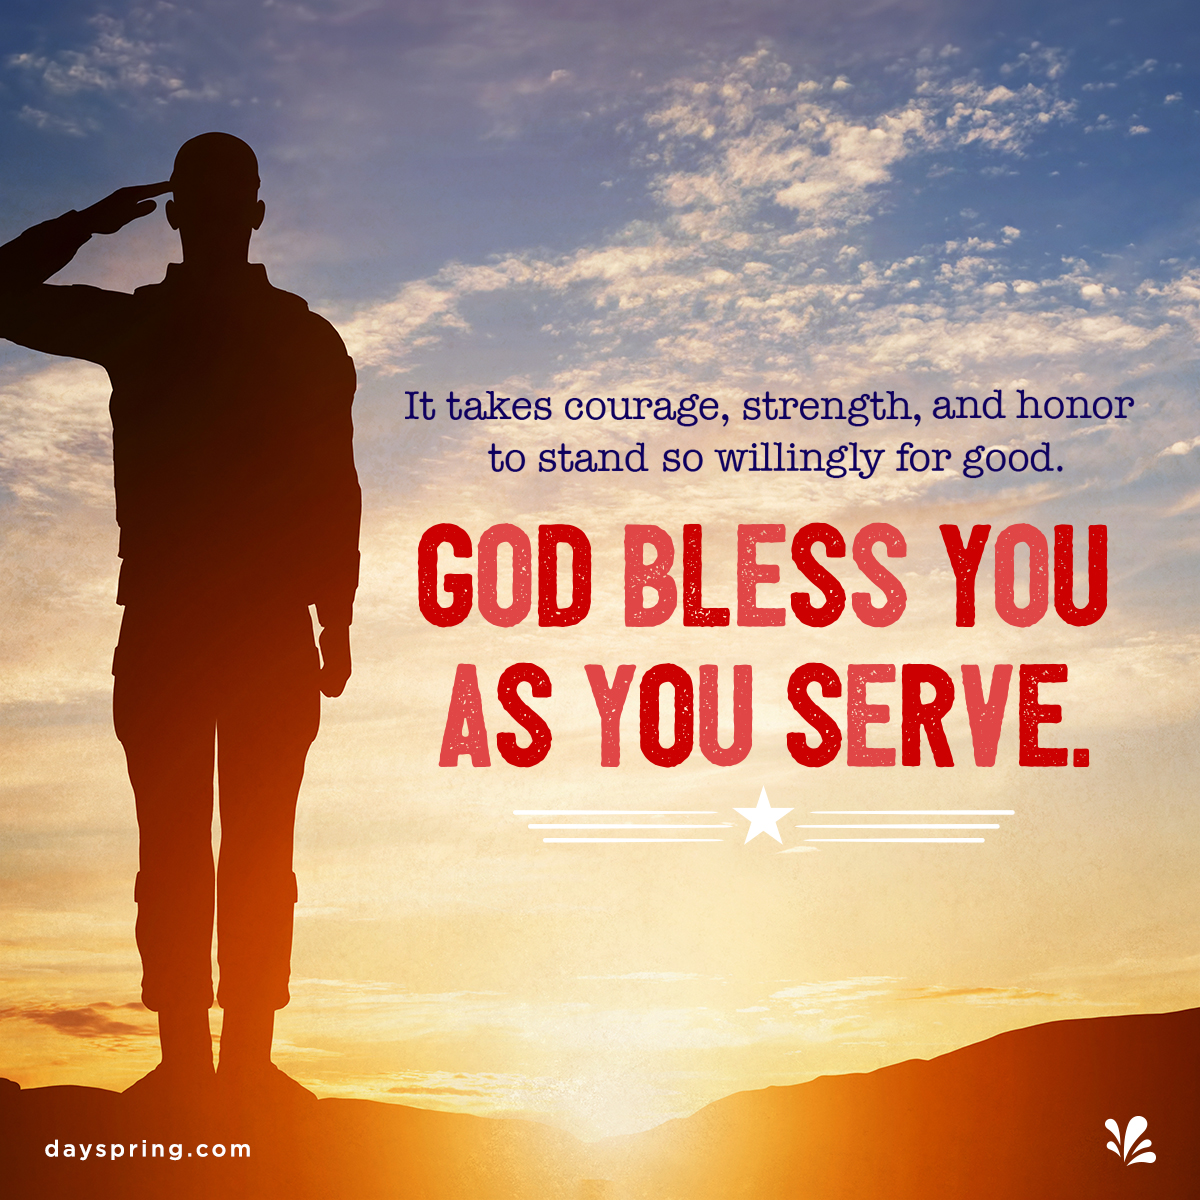 As You Serve